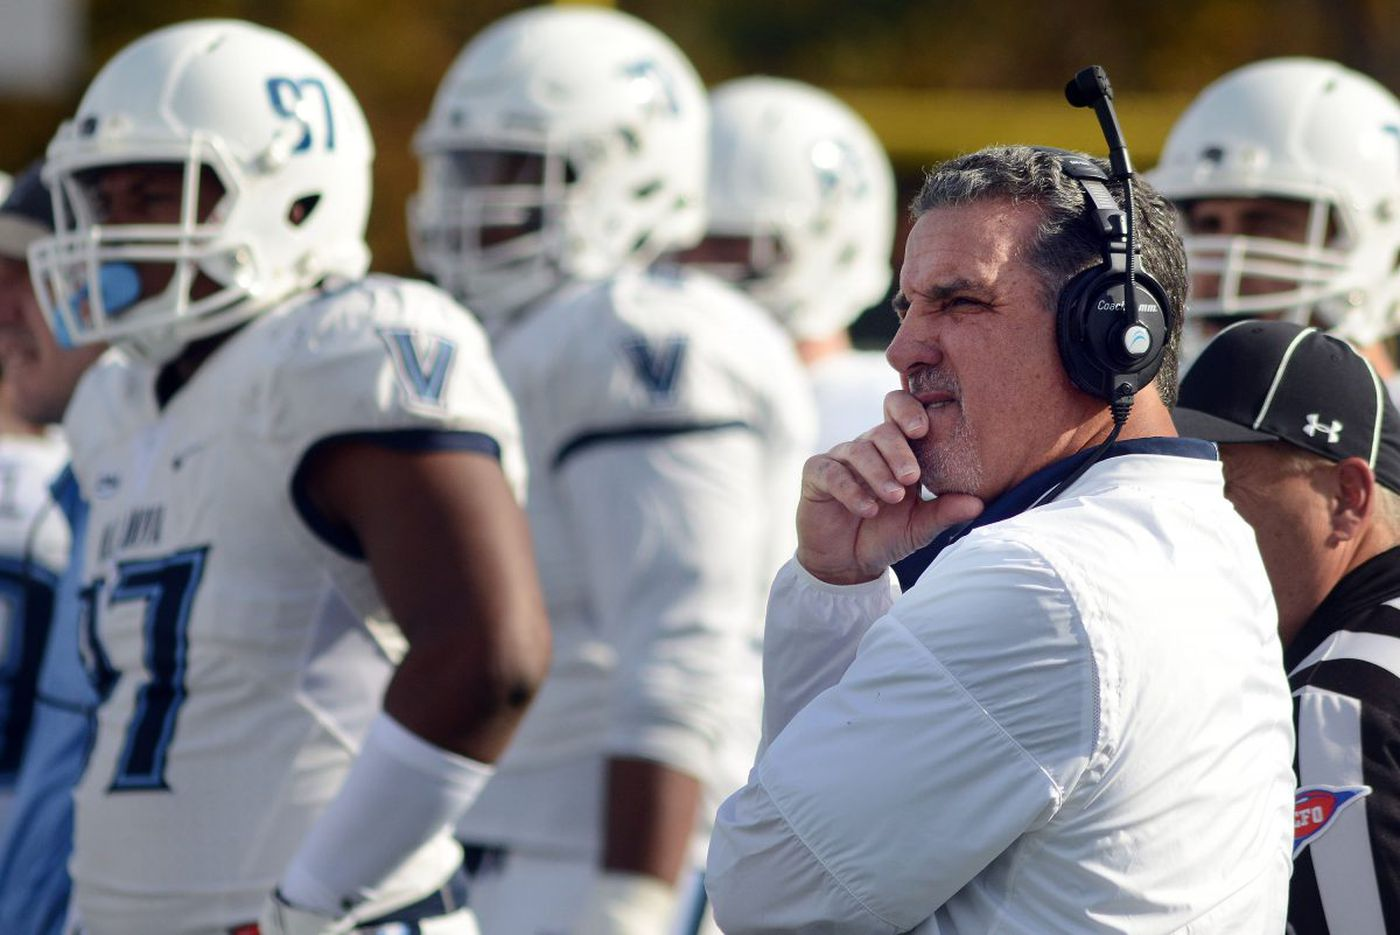 Villanova football trying to take something positive away from season to forget